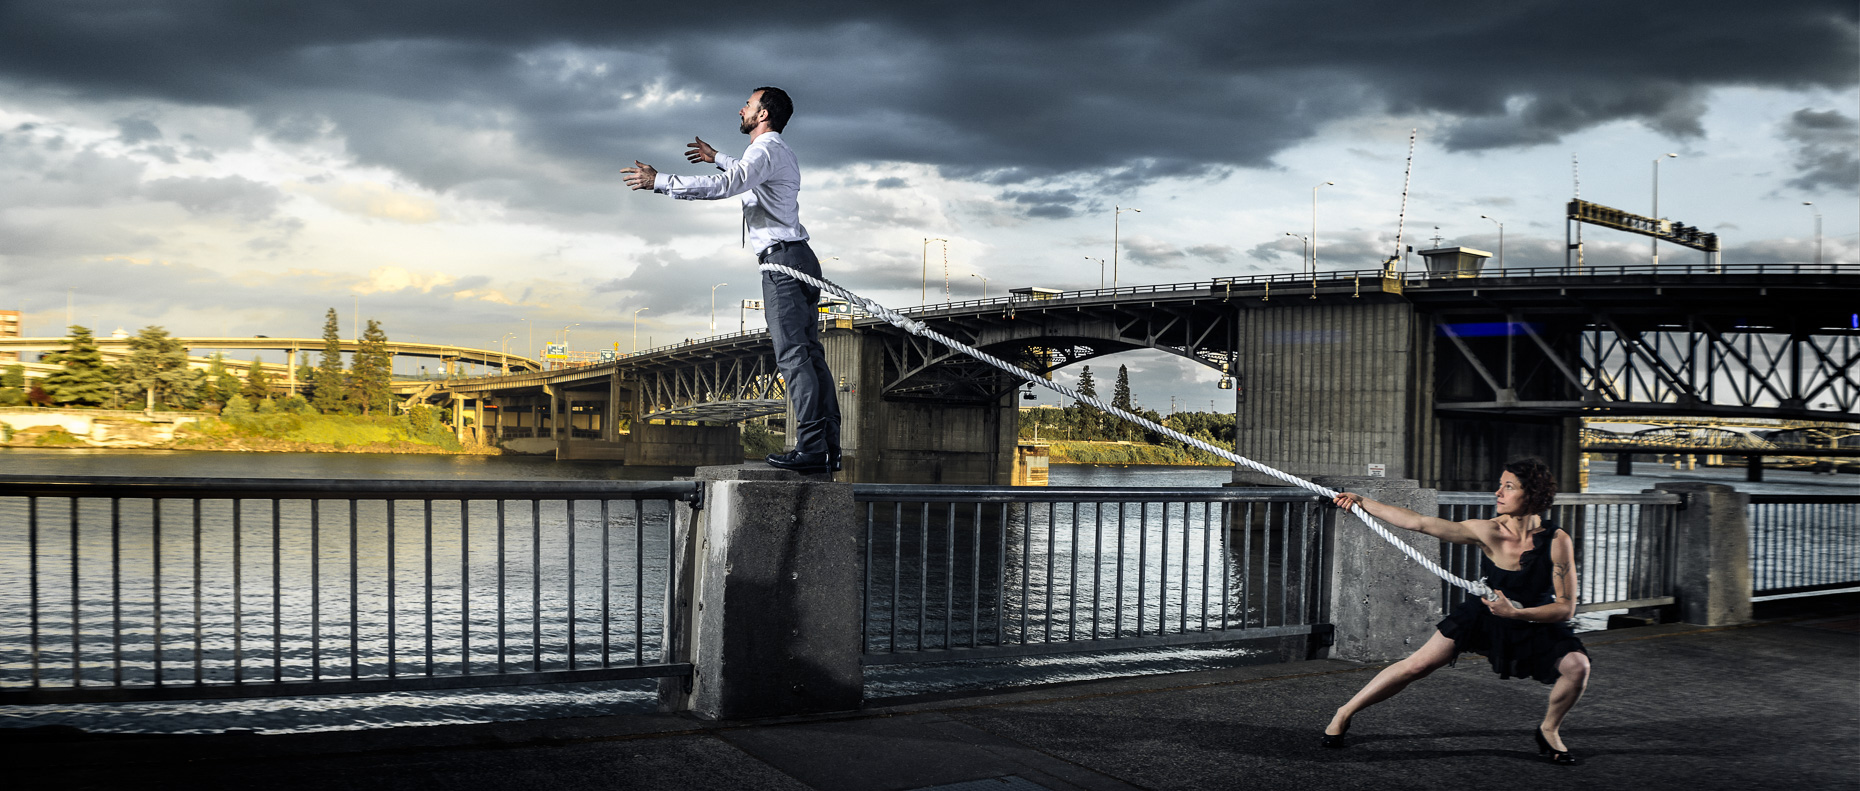 In this scene, Modern dancers Noel Plemons and Rachael Lembo practice social distance in this award-winning image next to the Morrison Bridge. Noel is suspended by a rope and reaches towards the opposite bank of the Willamette River and Rachael keeps the tension on the the opposite end of the rope to stop Noel from falling in. By Andy Batt